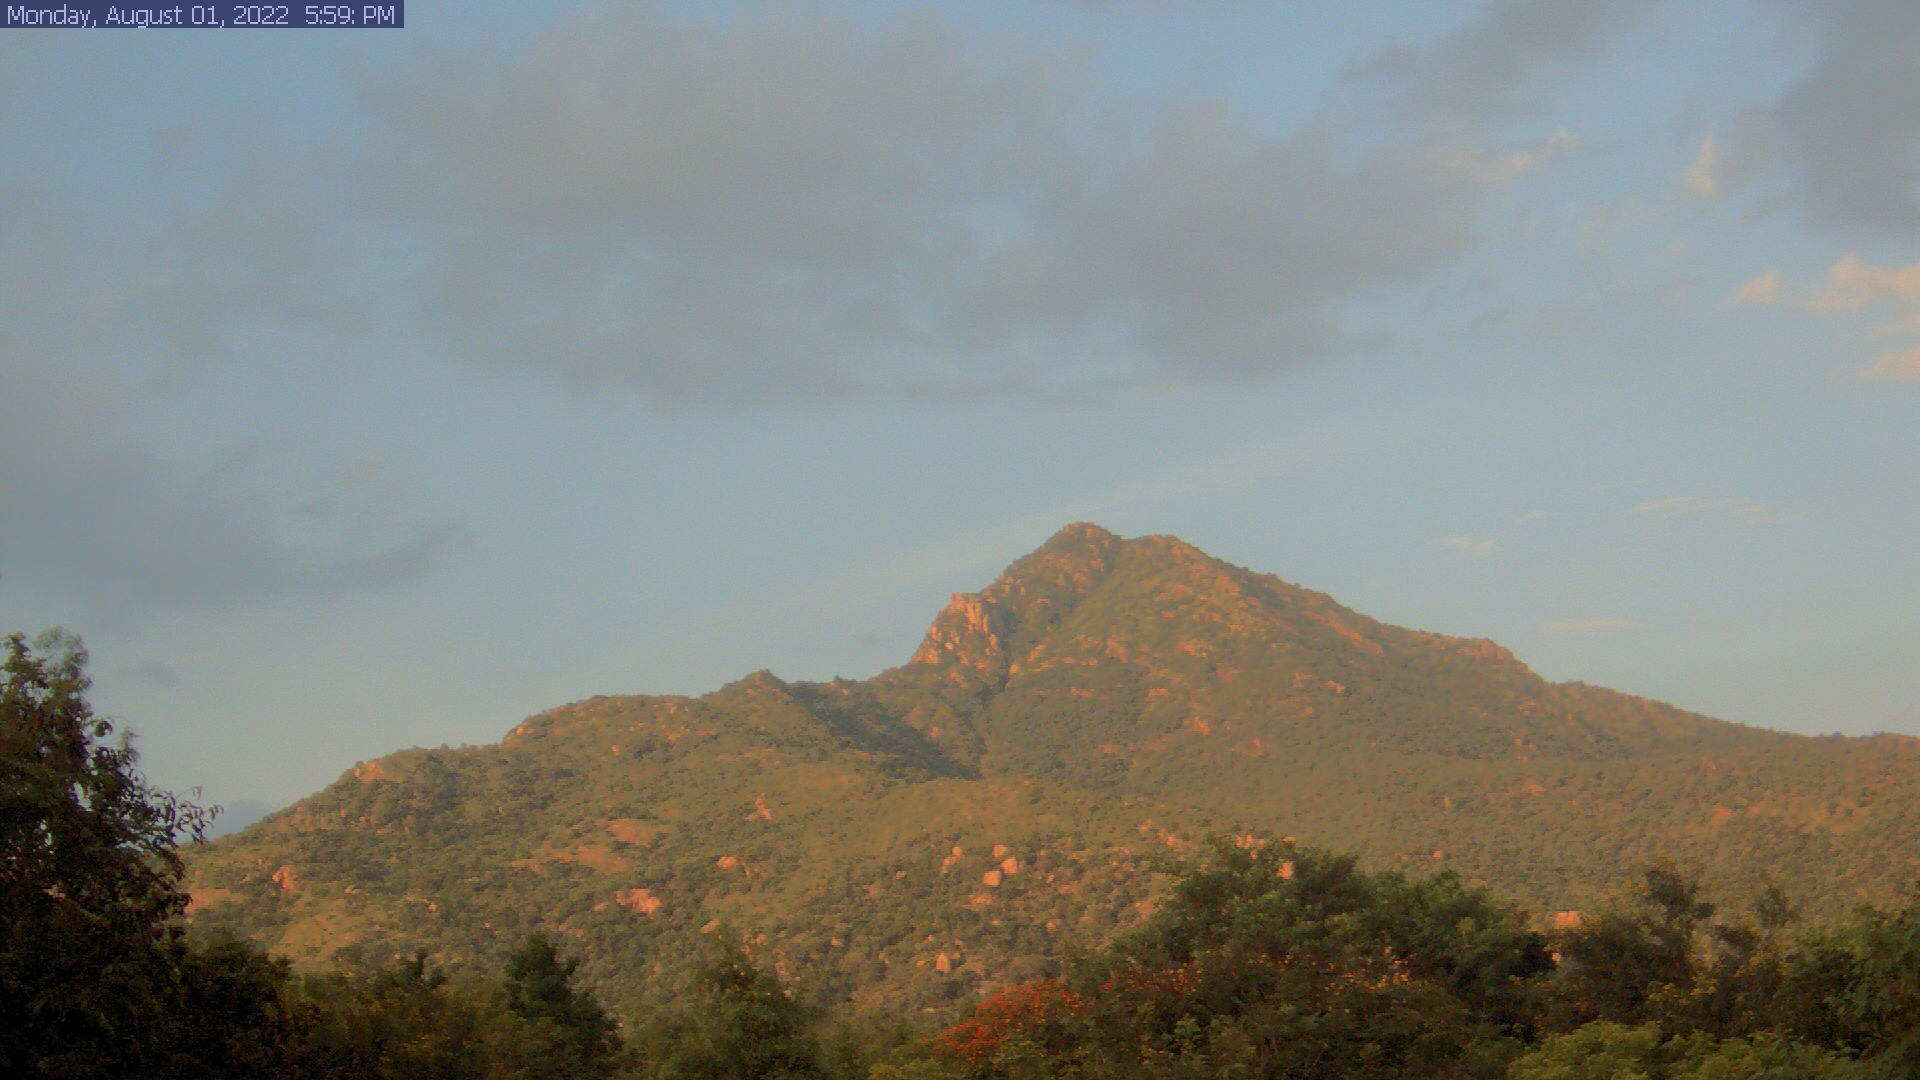 Tiruvannamalai Live Cam, India – Arunachala Mountain